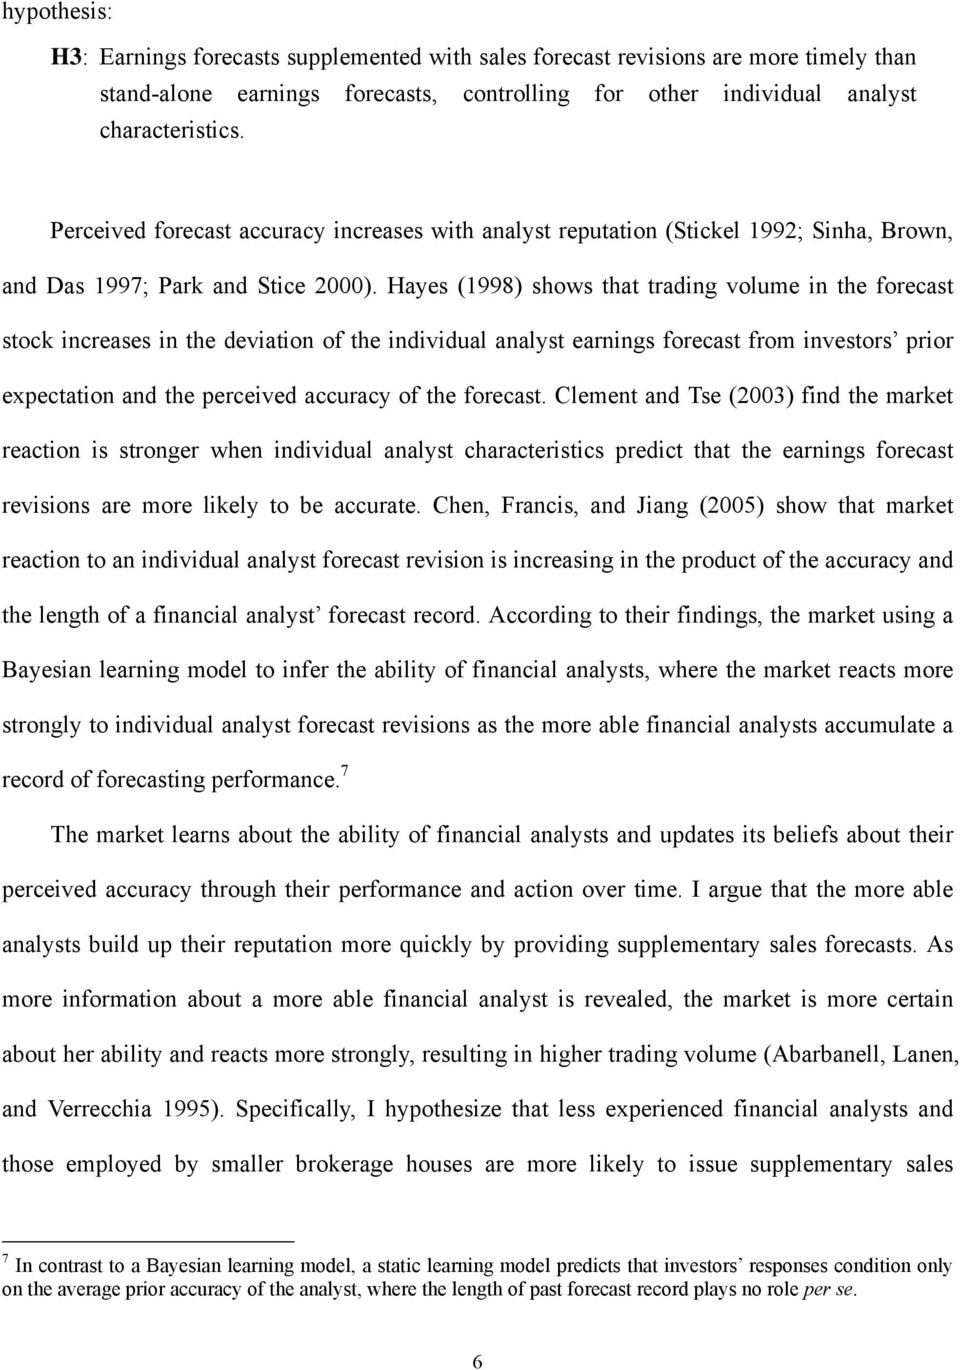 Hayes (1998) shows that trading volume in the forecast stock increases in the deviation of the individual analyst earnings forecast from investors prior expectation and the perceived accuracy of the